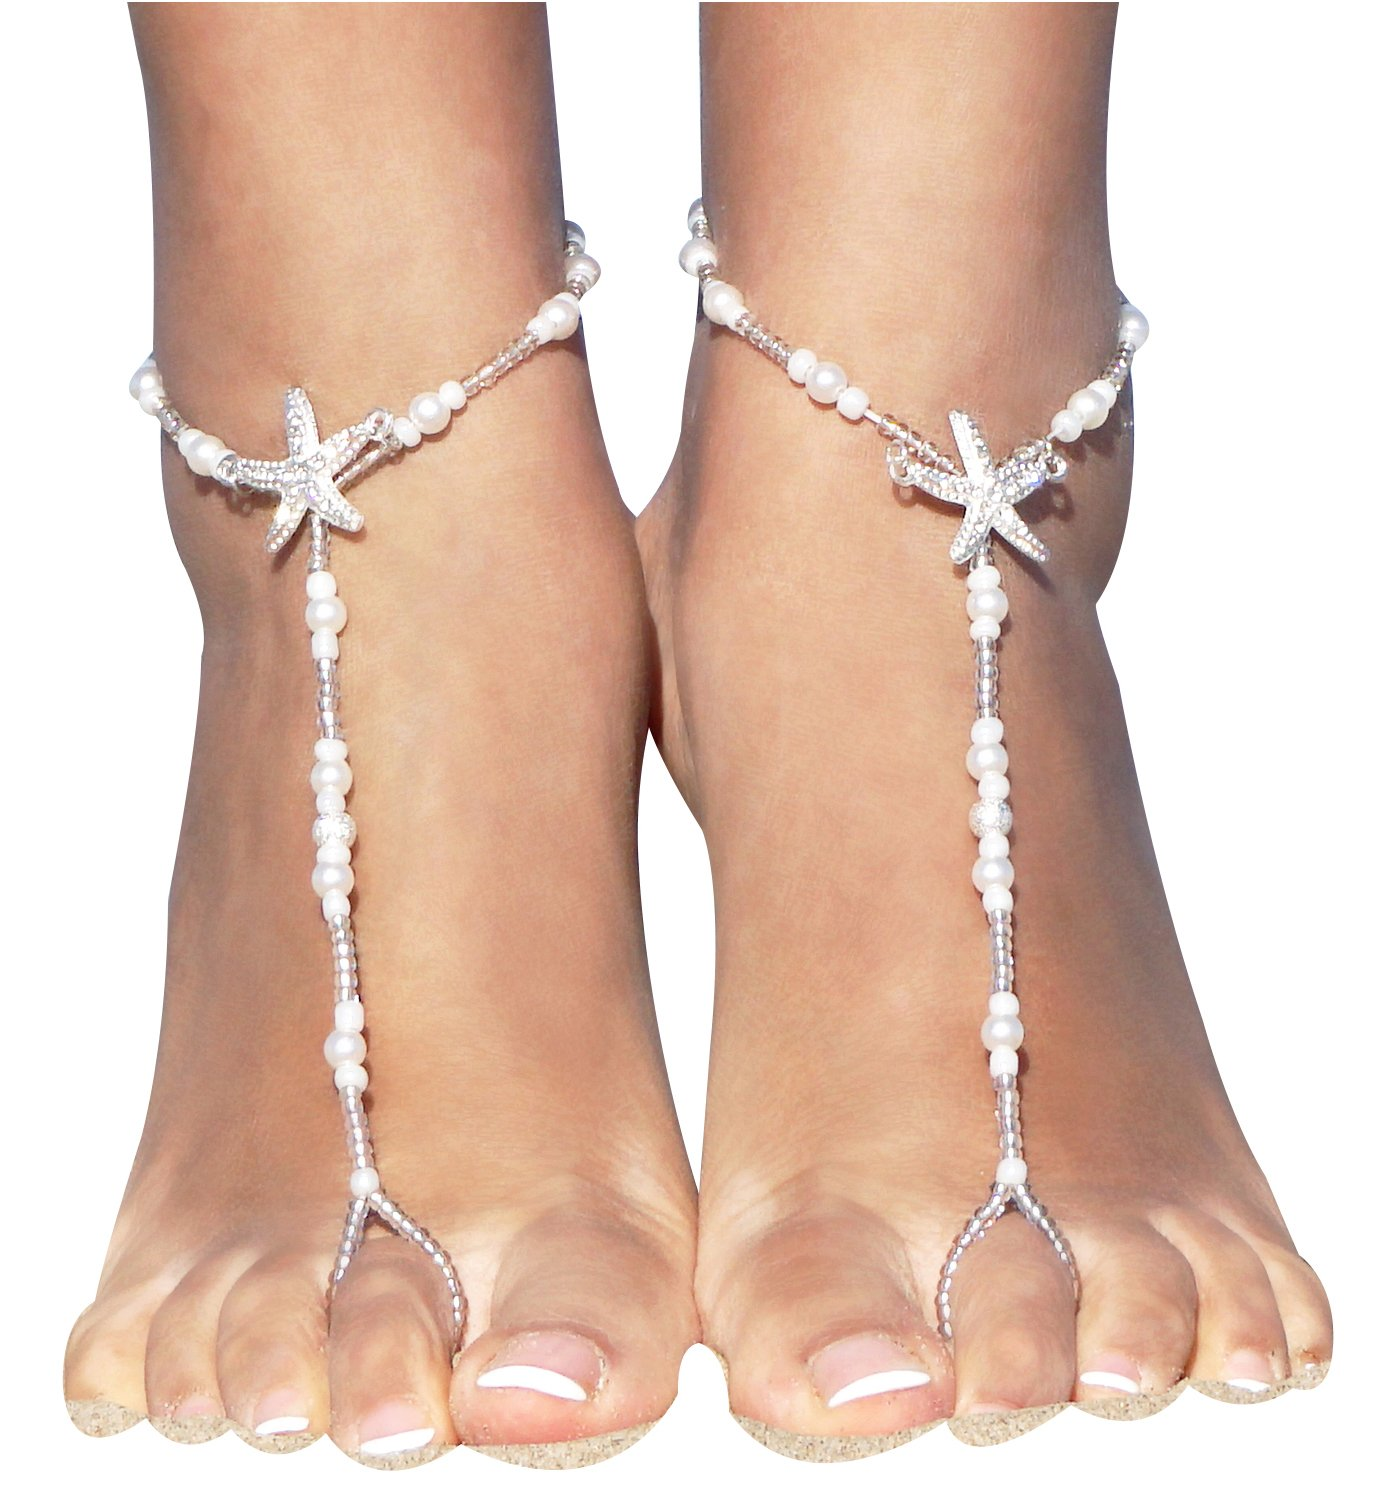 nevelynkanasha elegant for barefoot by wedding the nevelynka on sandal feet nasha bridal jewelry anklet pin